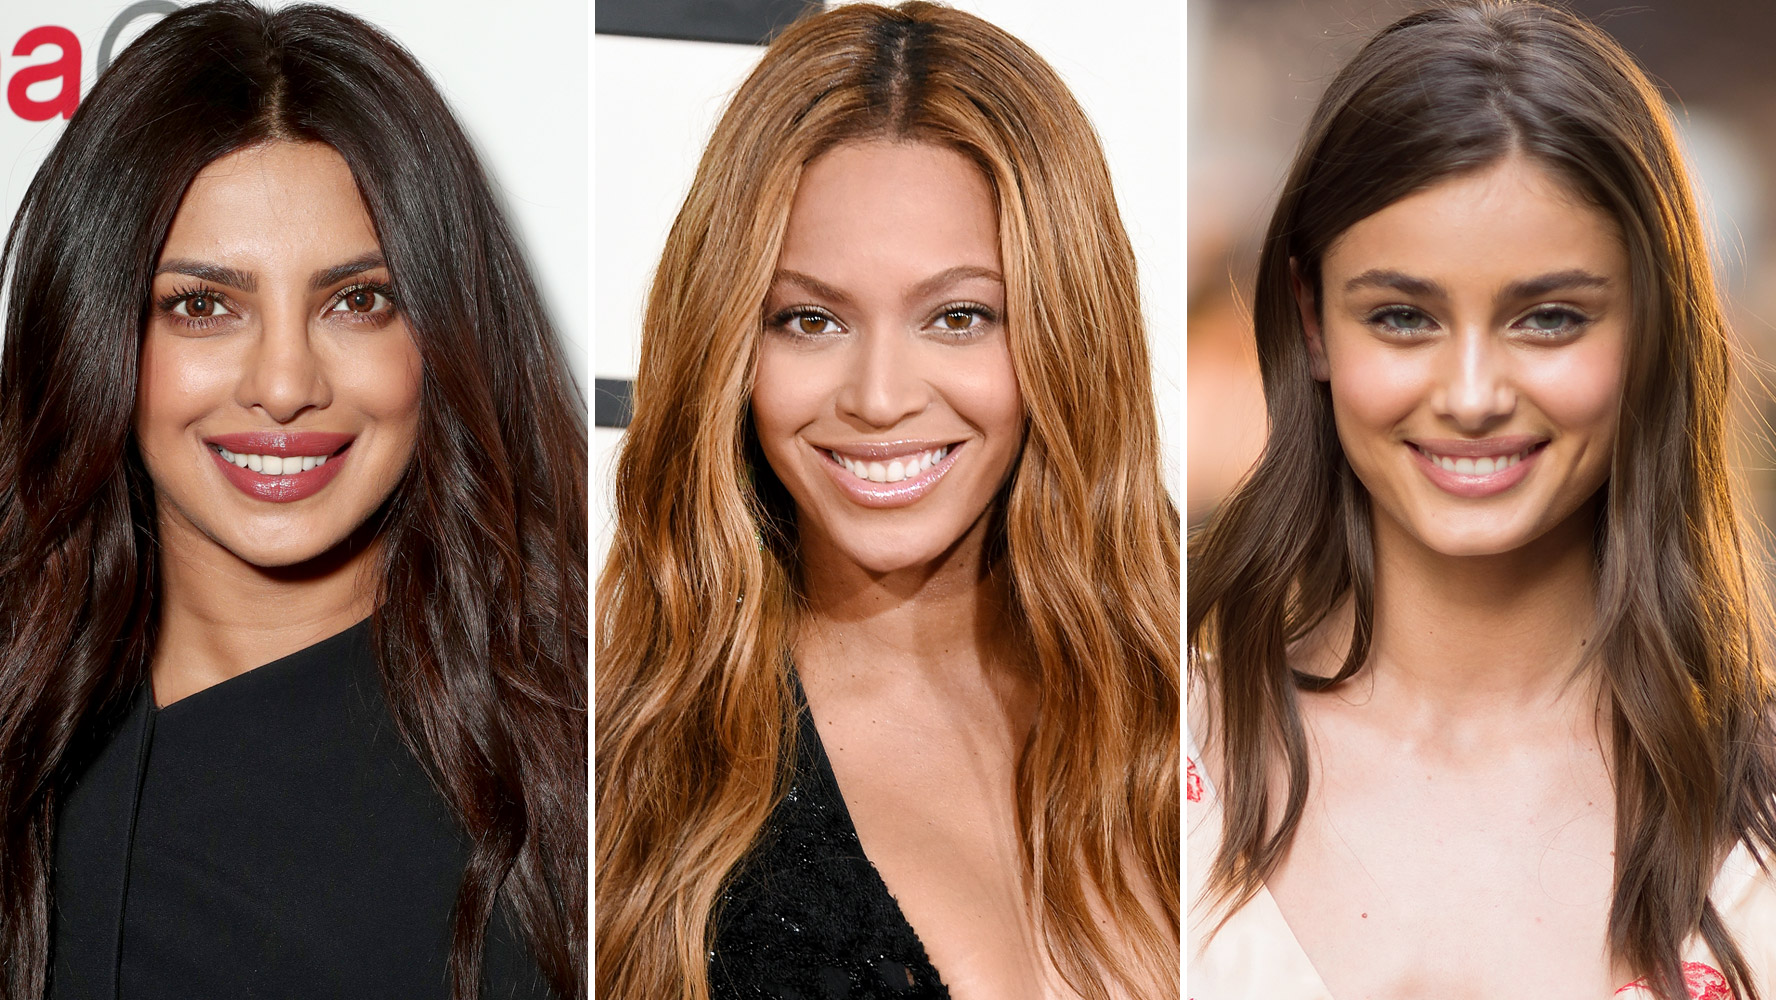 These Are the Most Beautiful Women in the World, According to a New Poll